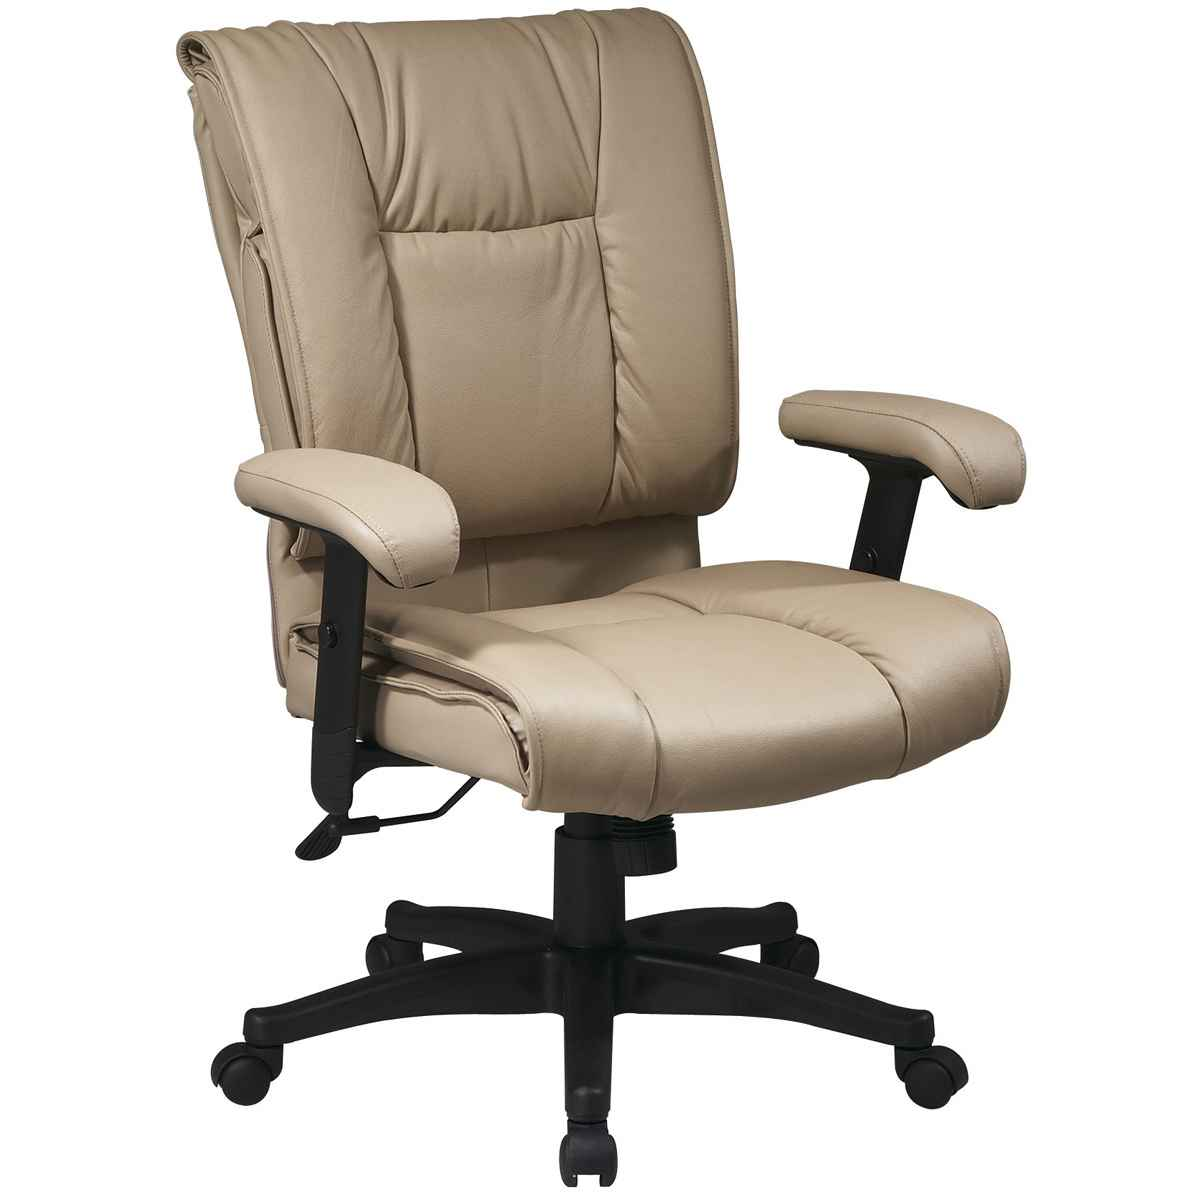 Soft leather executive computer chair